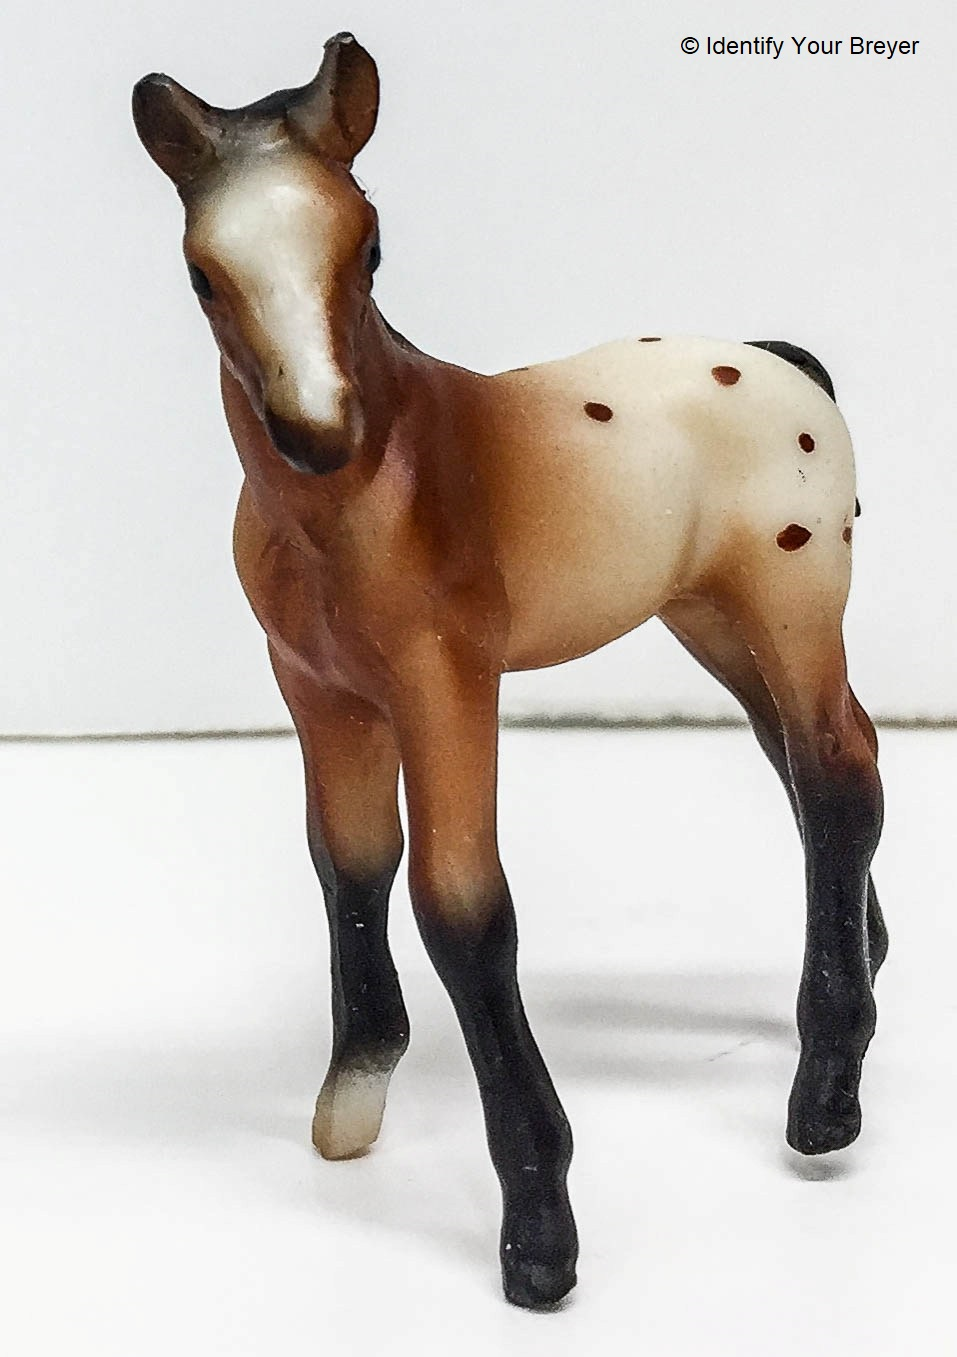 Identify Your Breyer Thoroughbred Standing Foal